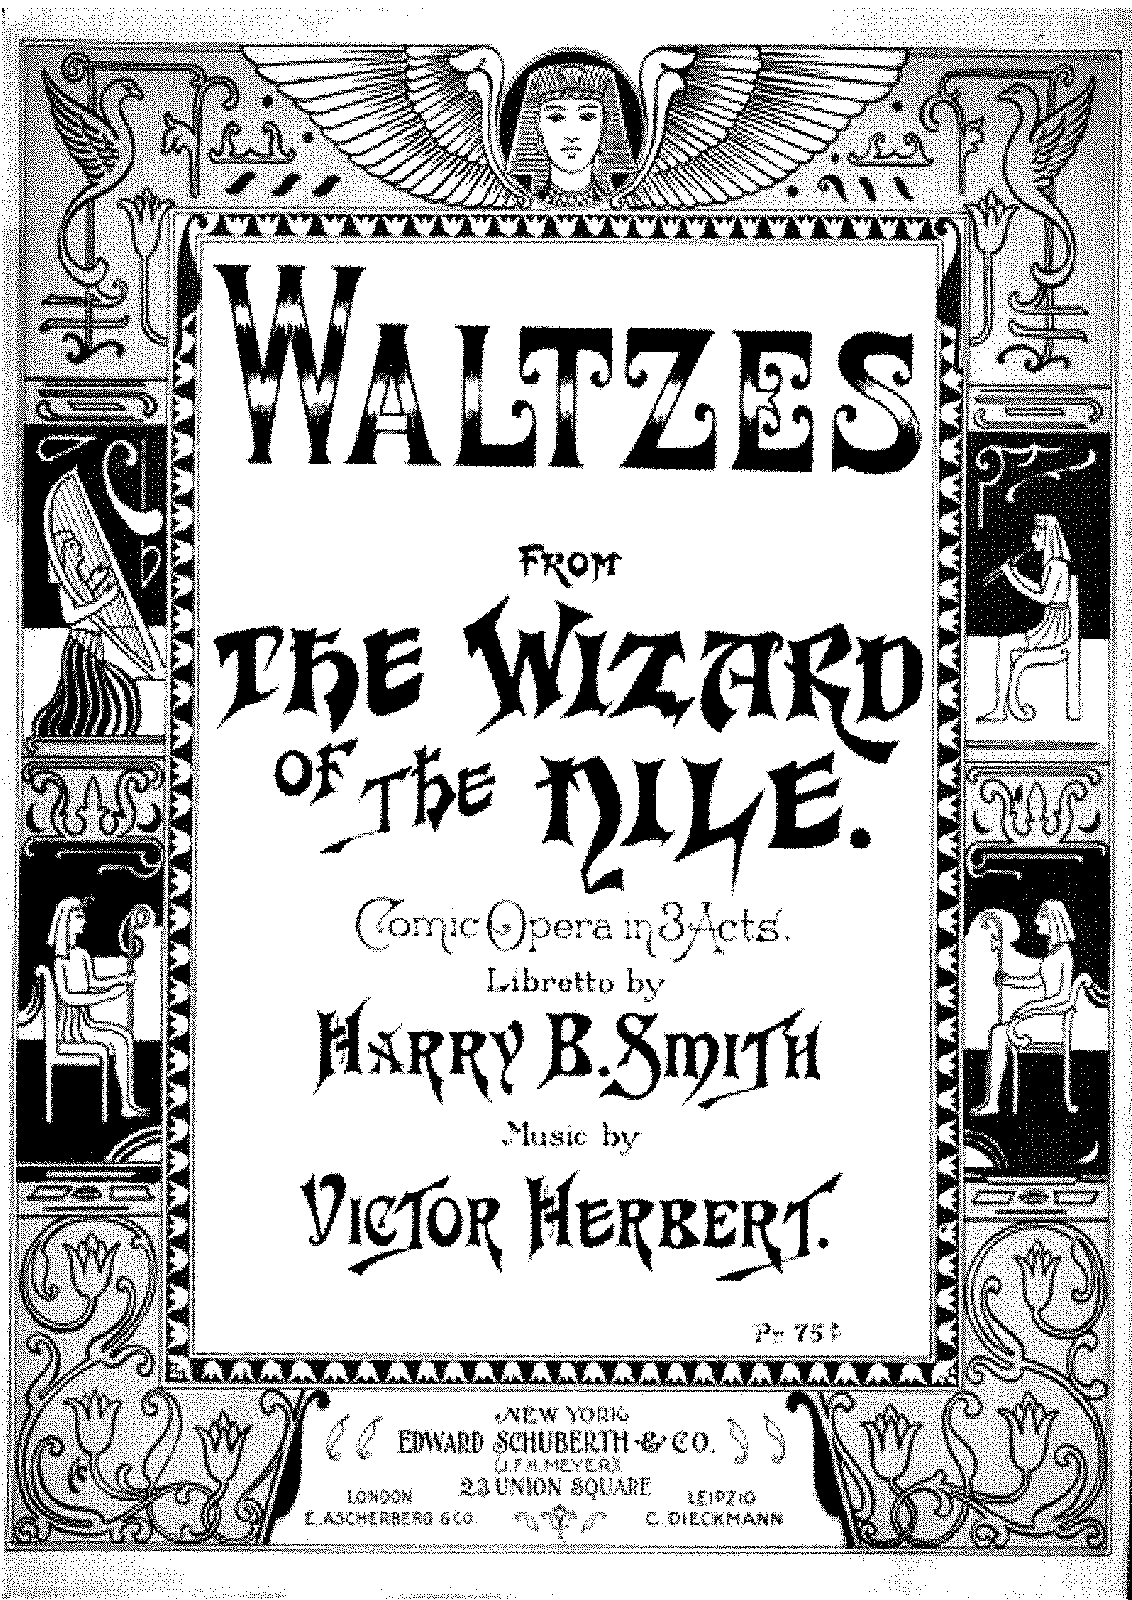 Herbert - The Wizard of the Nile (Waltzes).pdf